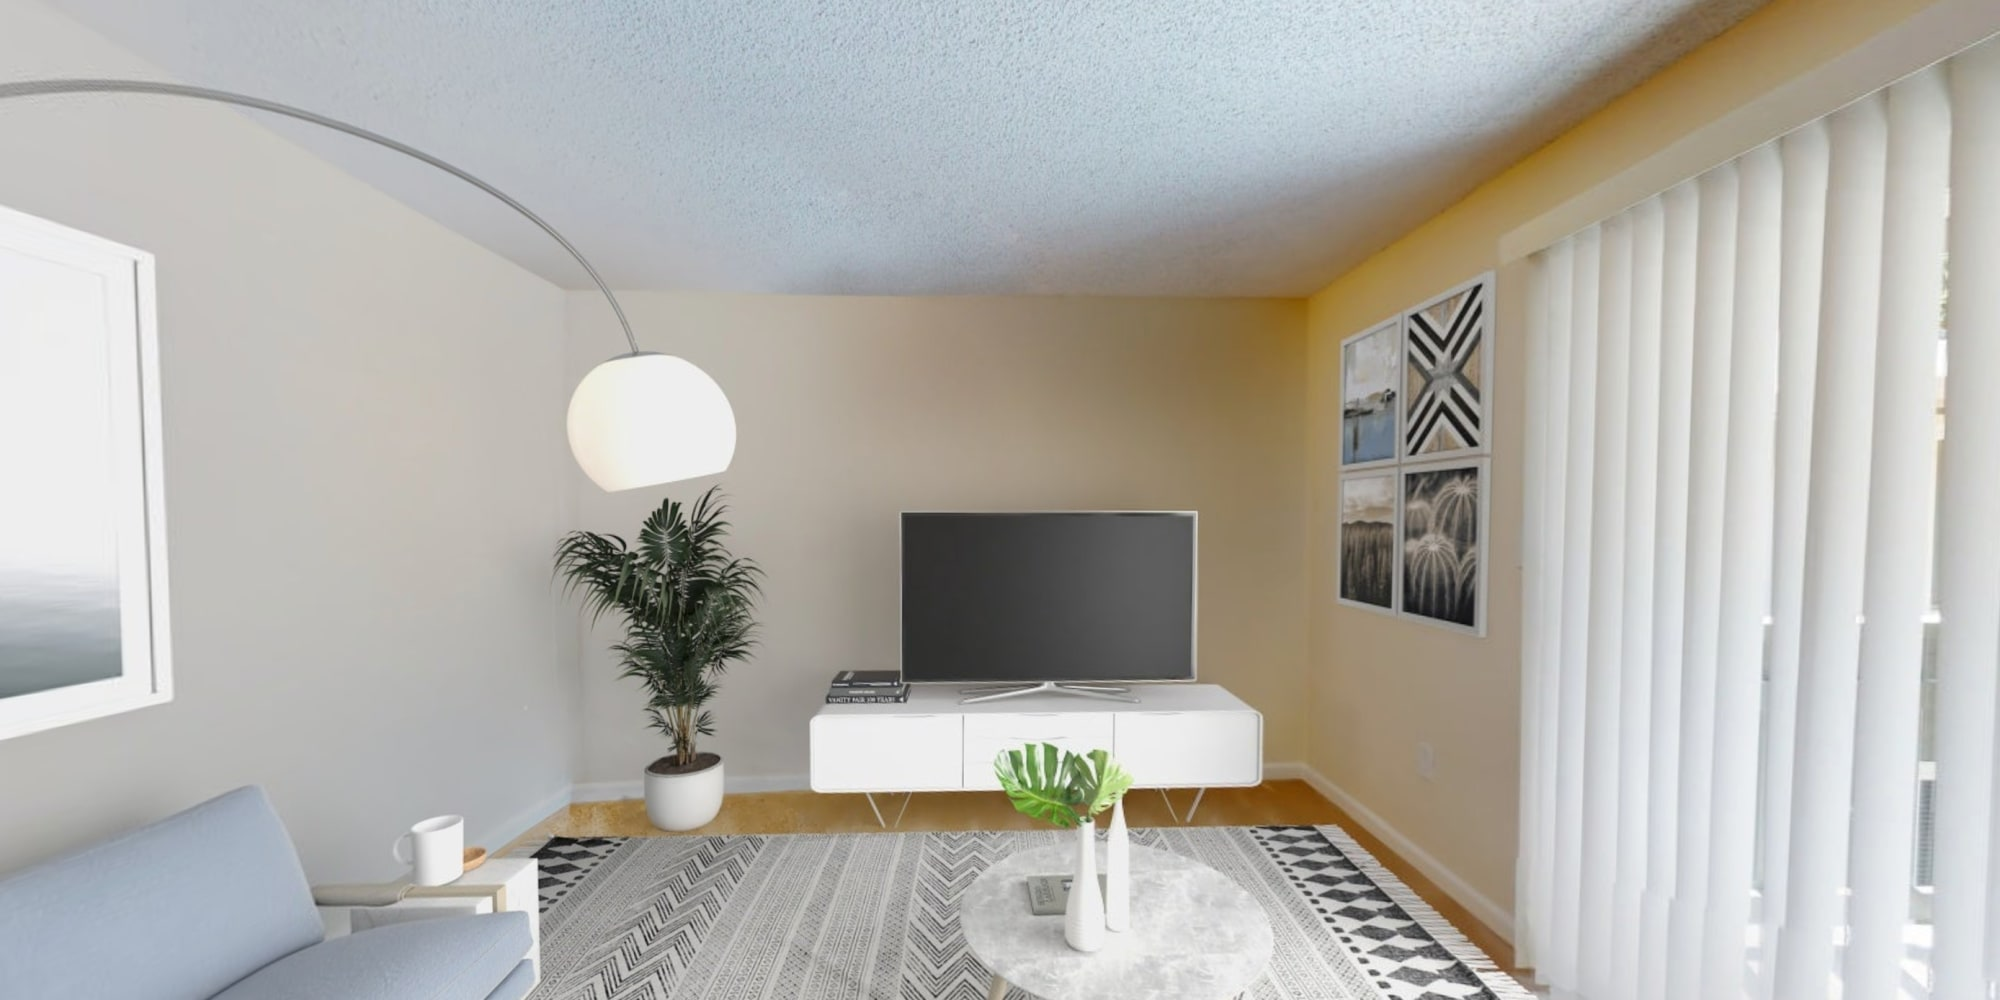 View a virtual tour of our two bedroom homes at Pleasanton Glen Apartment Homes in Pleasanton, California